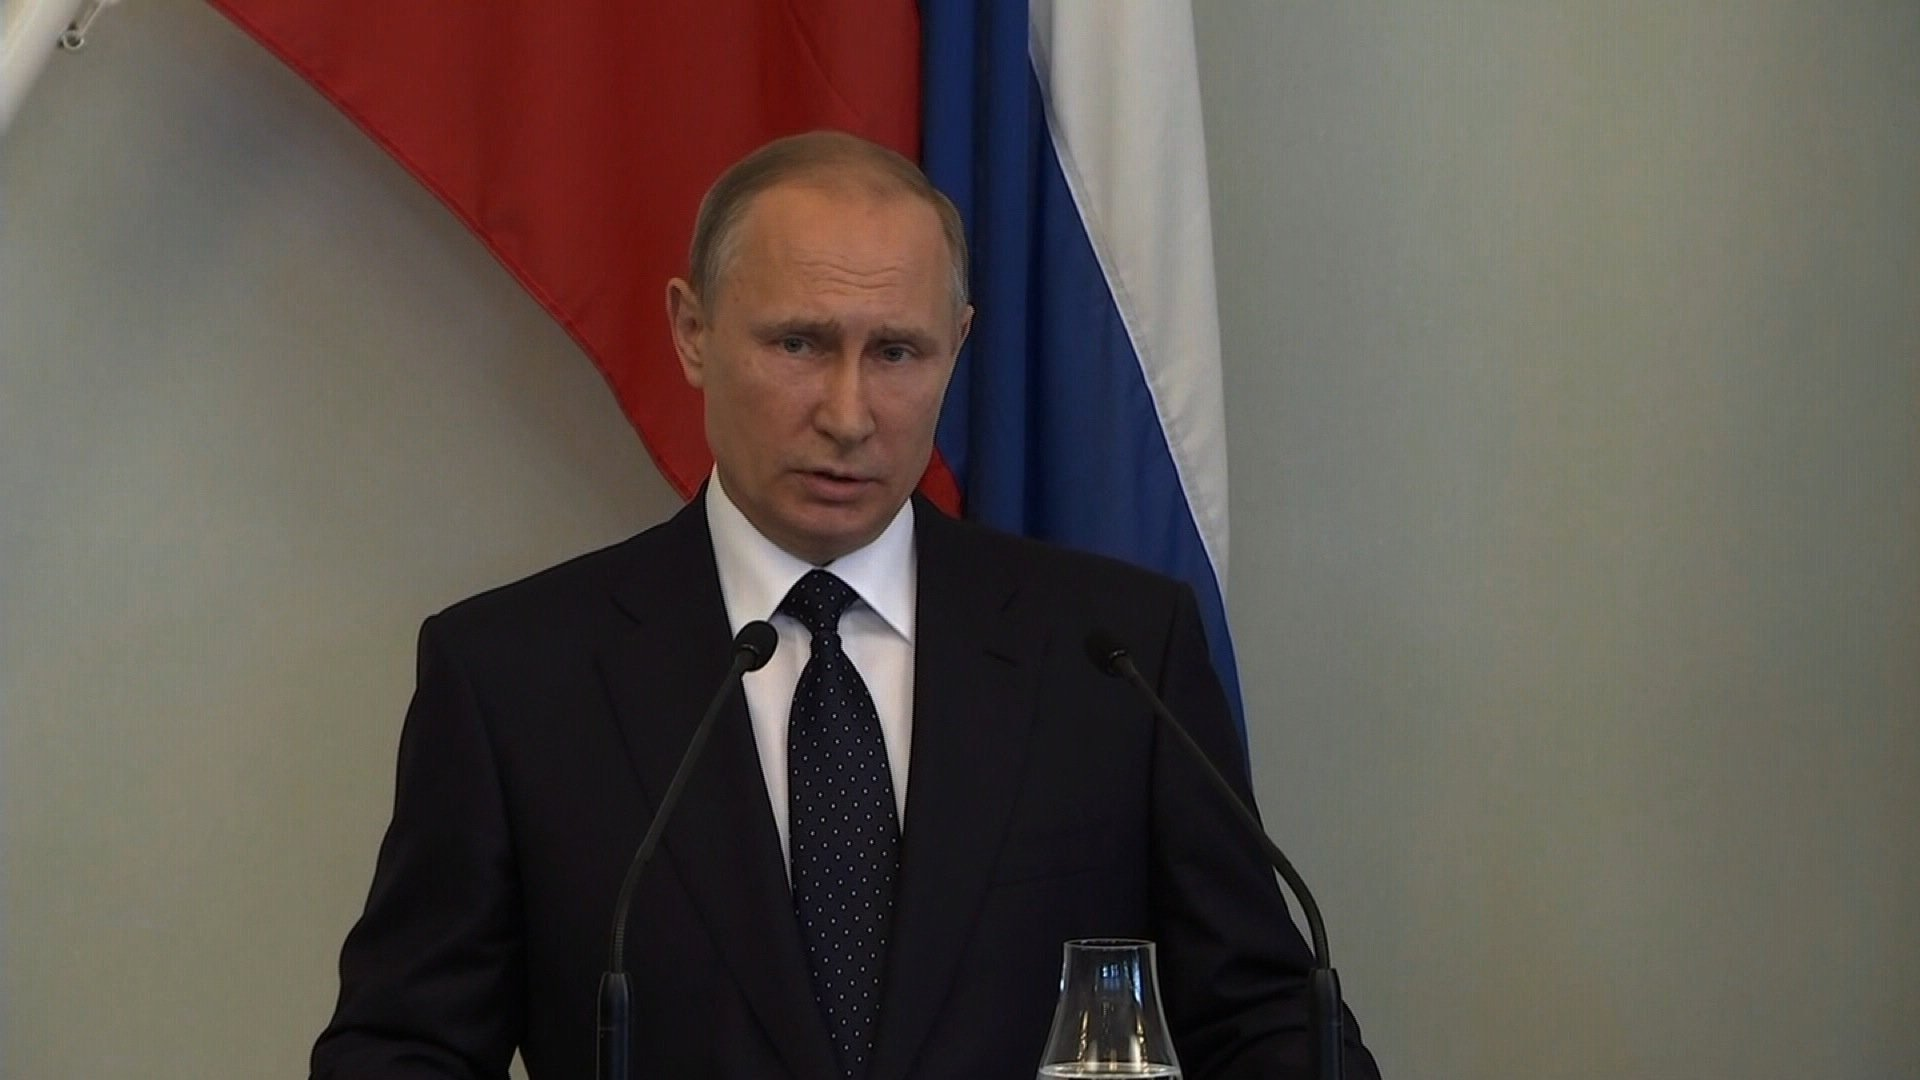 Russian Federation will retaliate if sanctions are signed into law: Putin